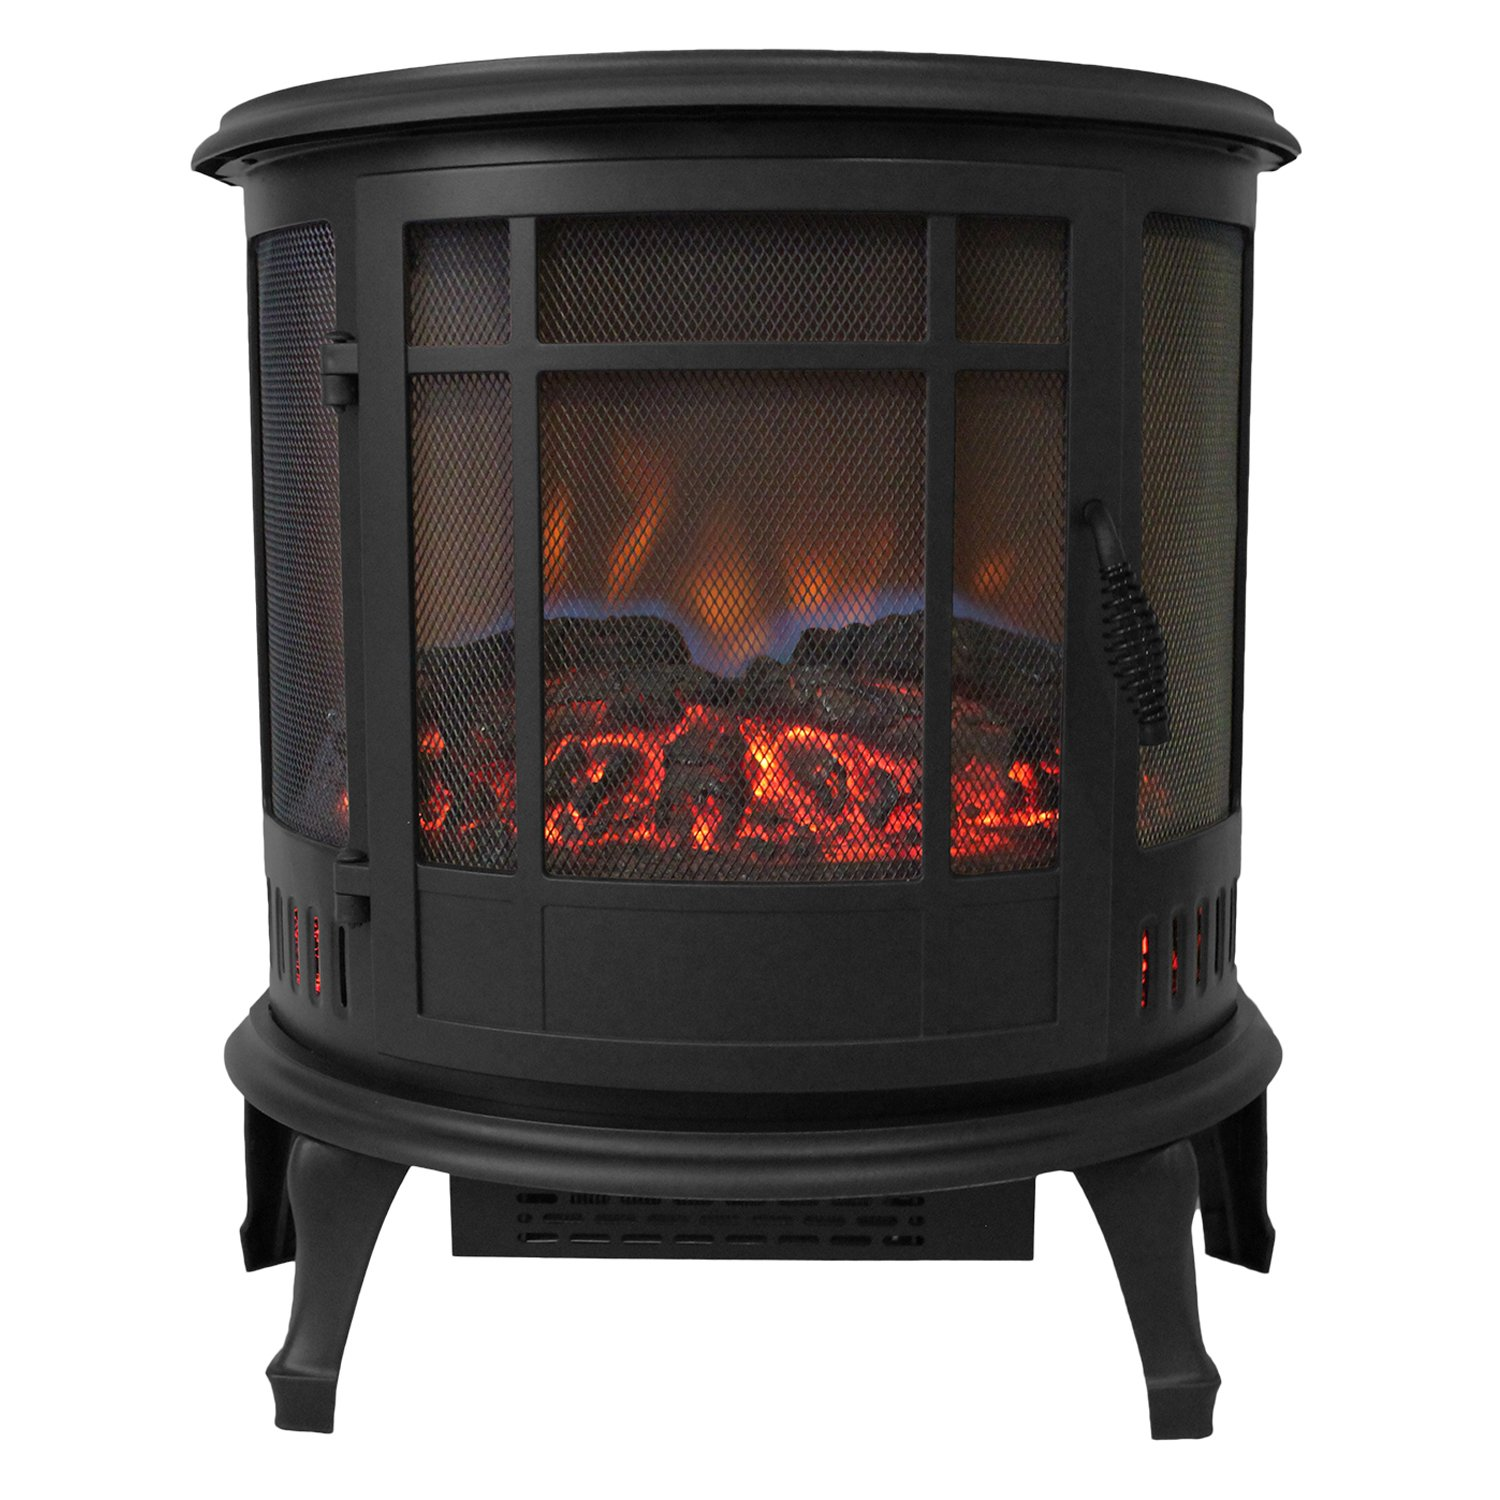 Comfort Glow The Claremont Electric Stove by Comfort Glow